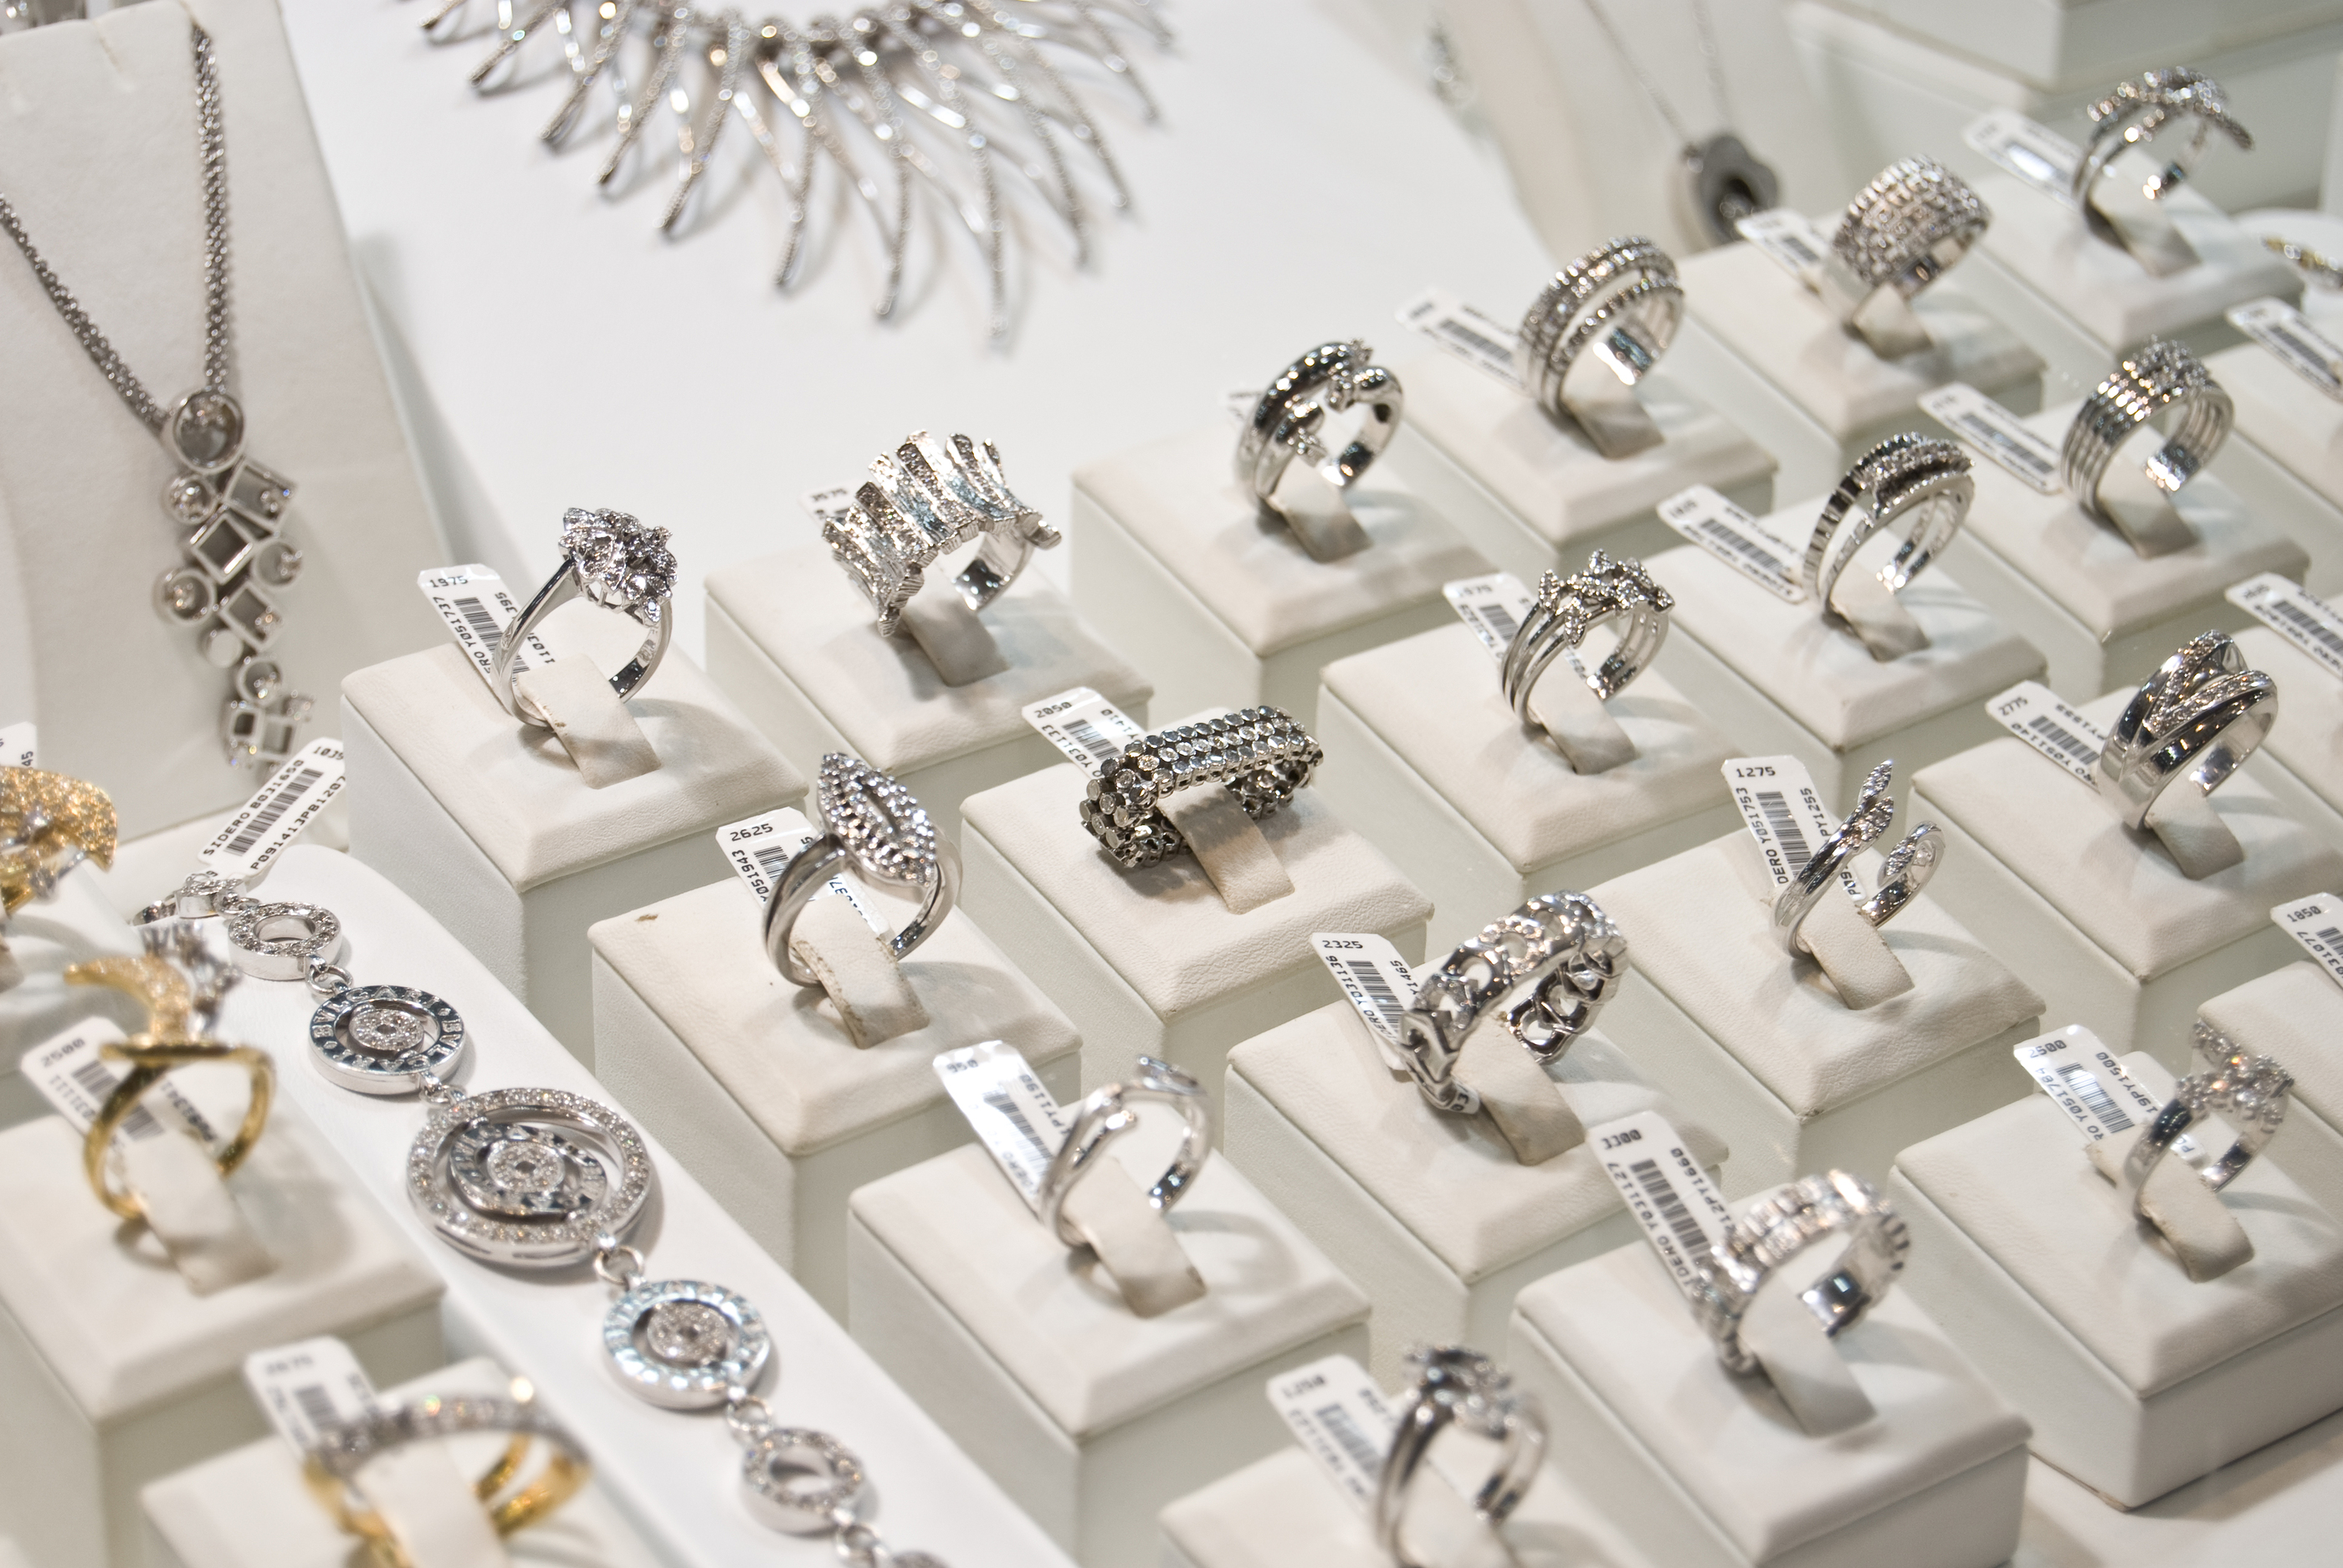 Caring for & Cleaning your Jewelry, the Smart Way